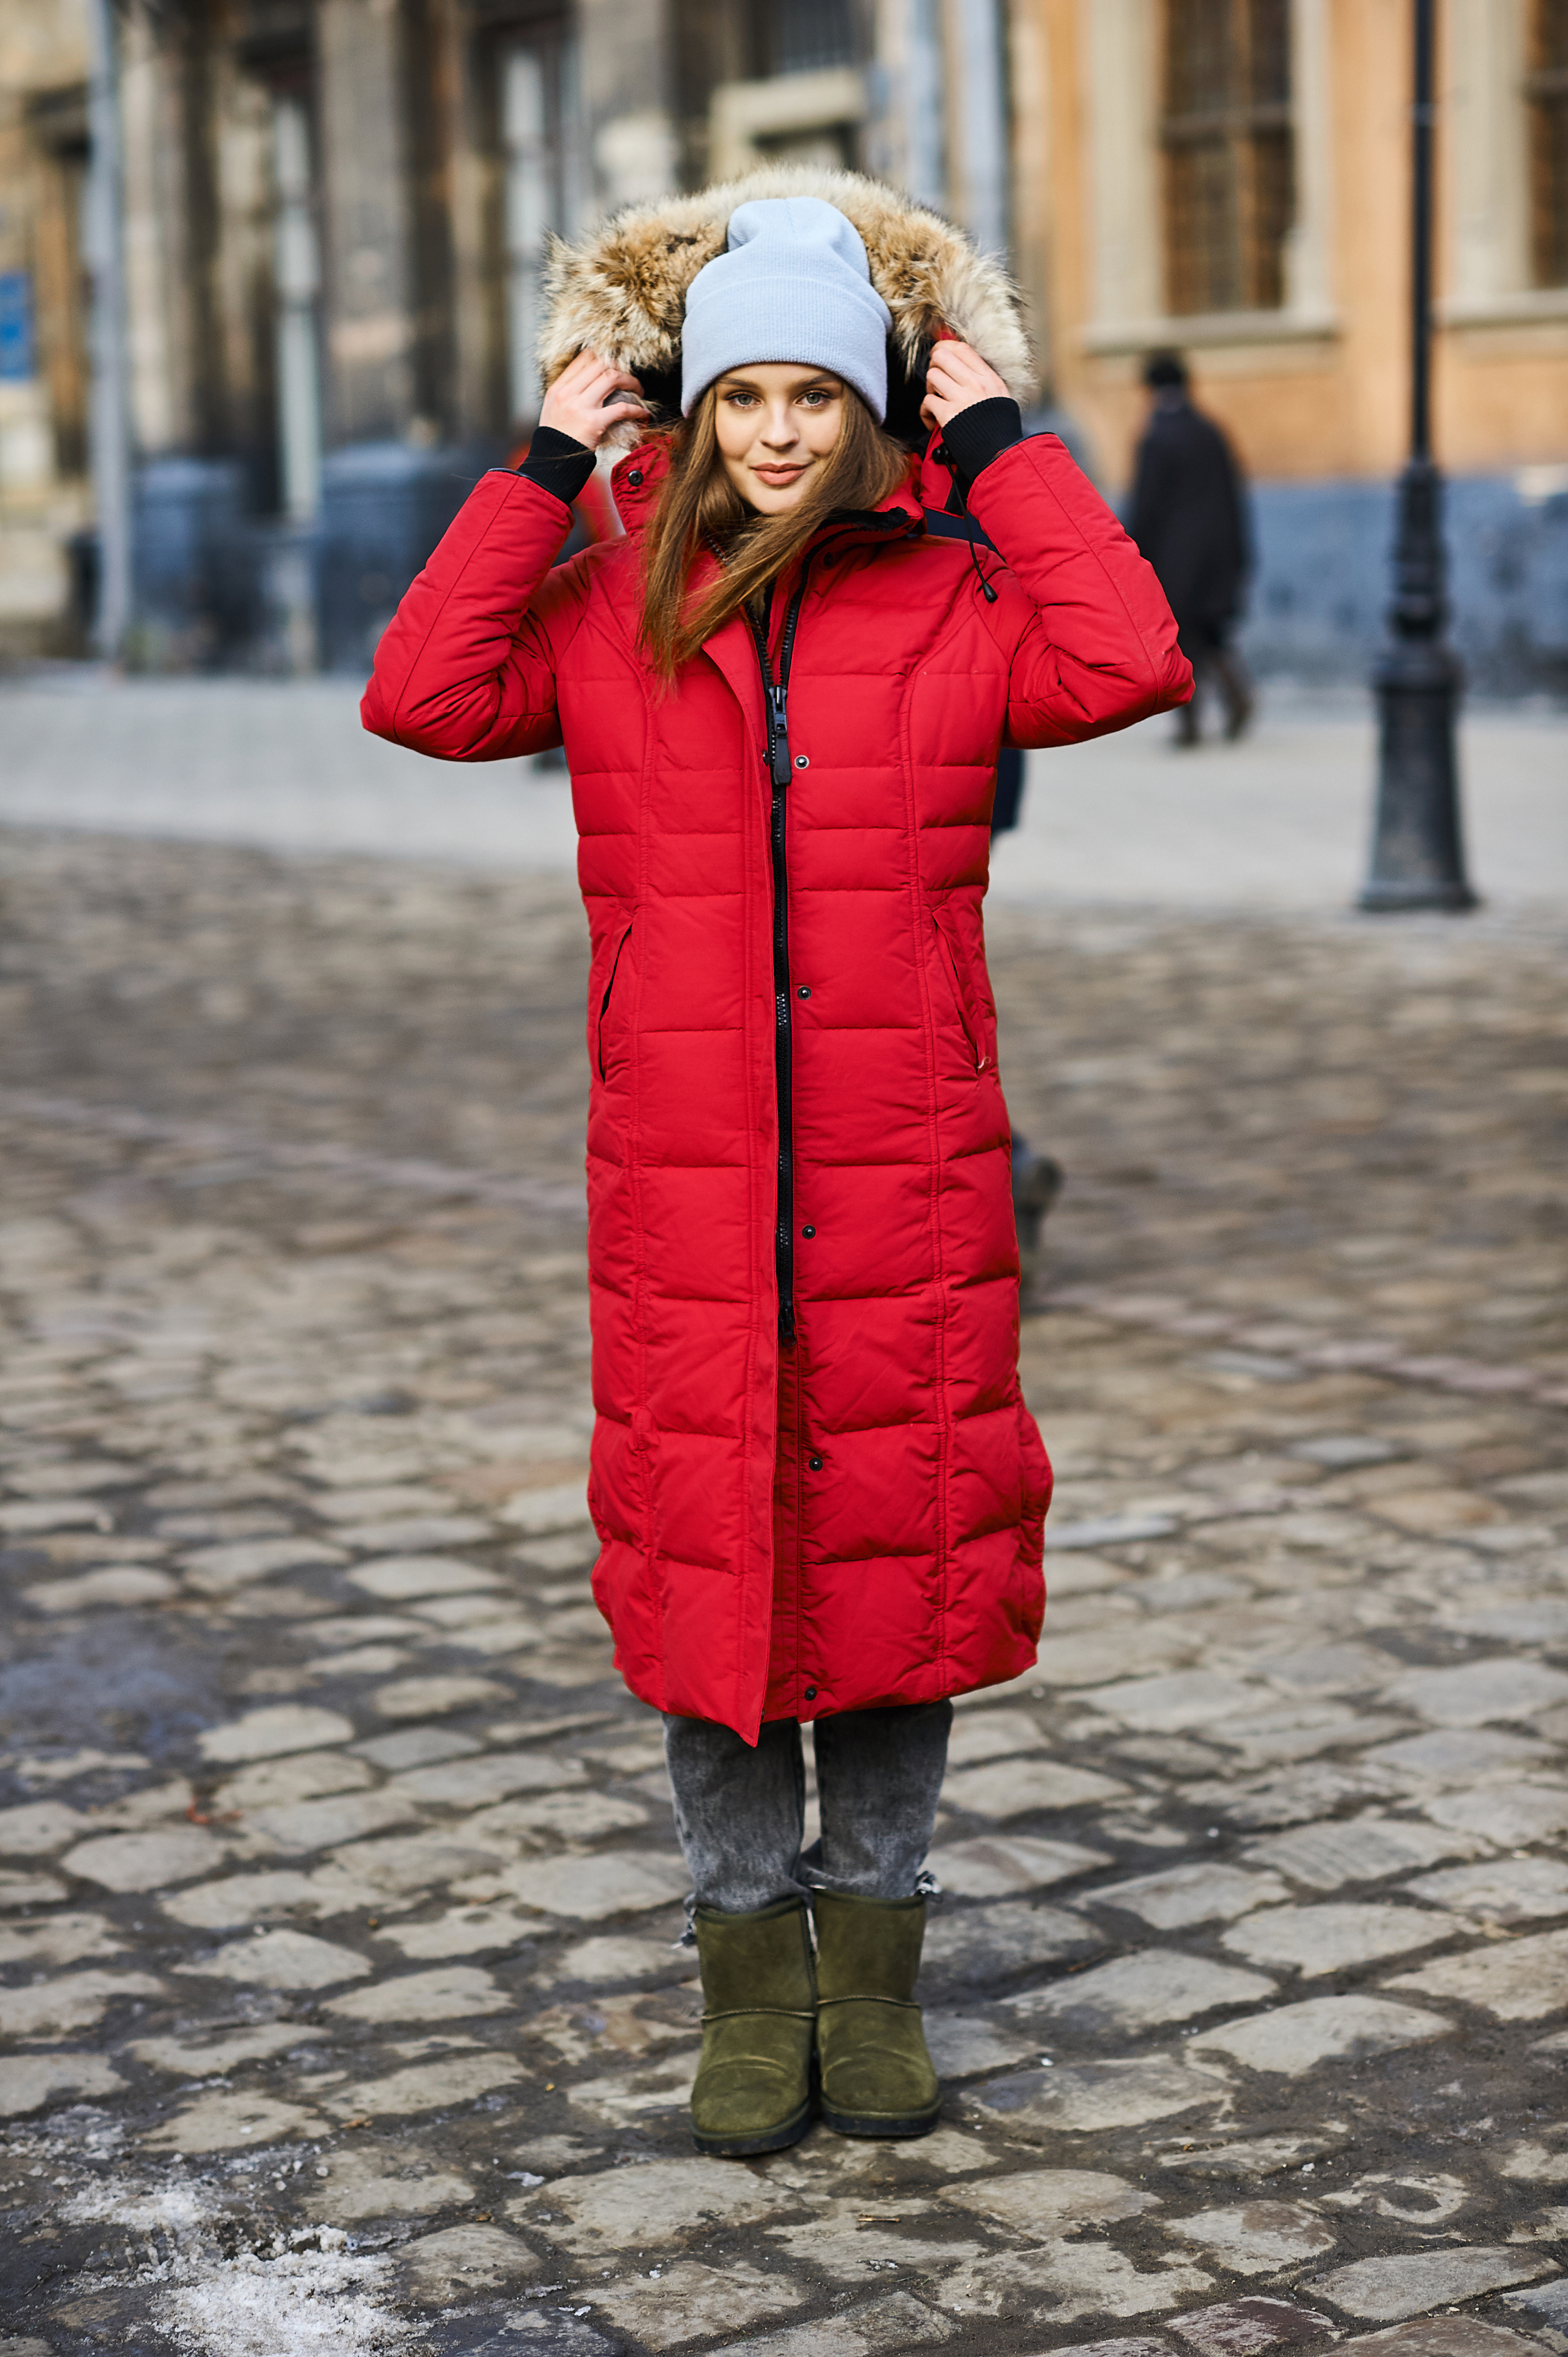 Women's Luxury Winter Coats: Dress in Style for the Canadian Cold